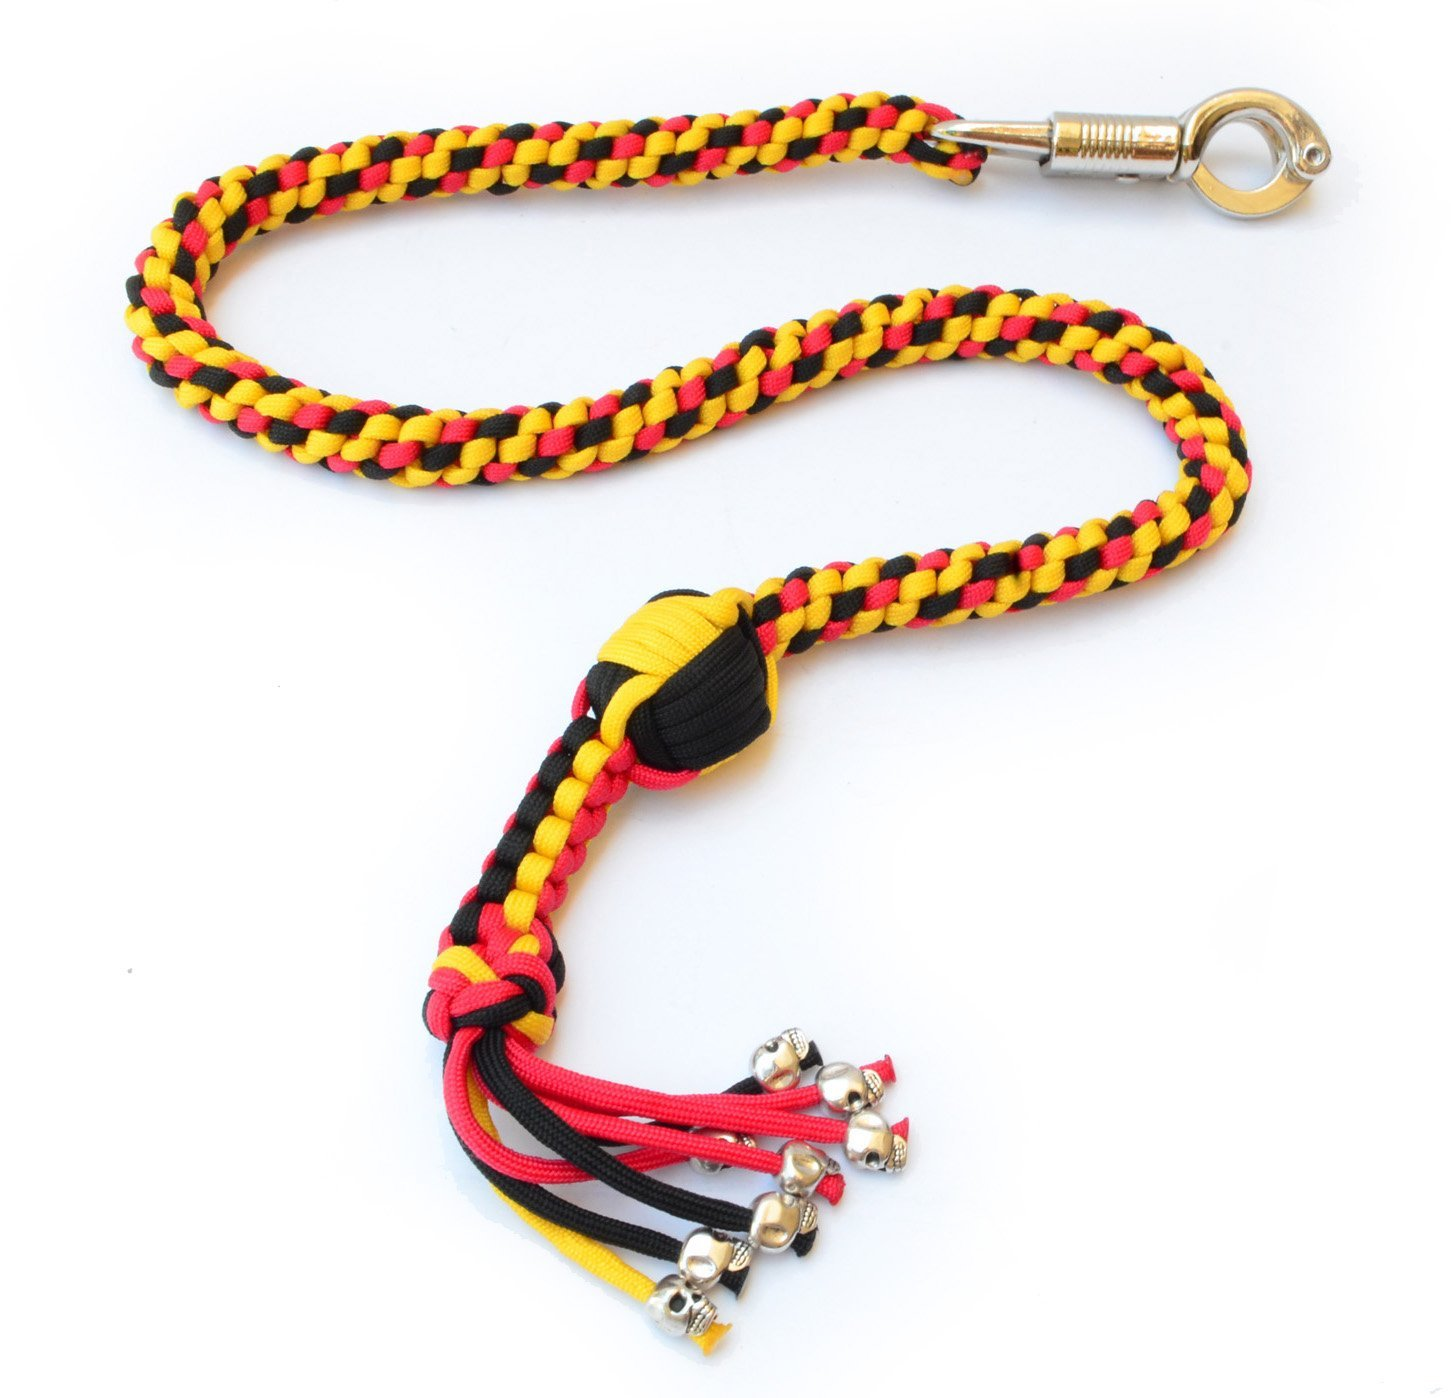 550 Paracord Motorcycle Whip Get Back Whip Ball & Skulls 36'' Rope - Yellow/Red / Black